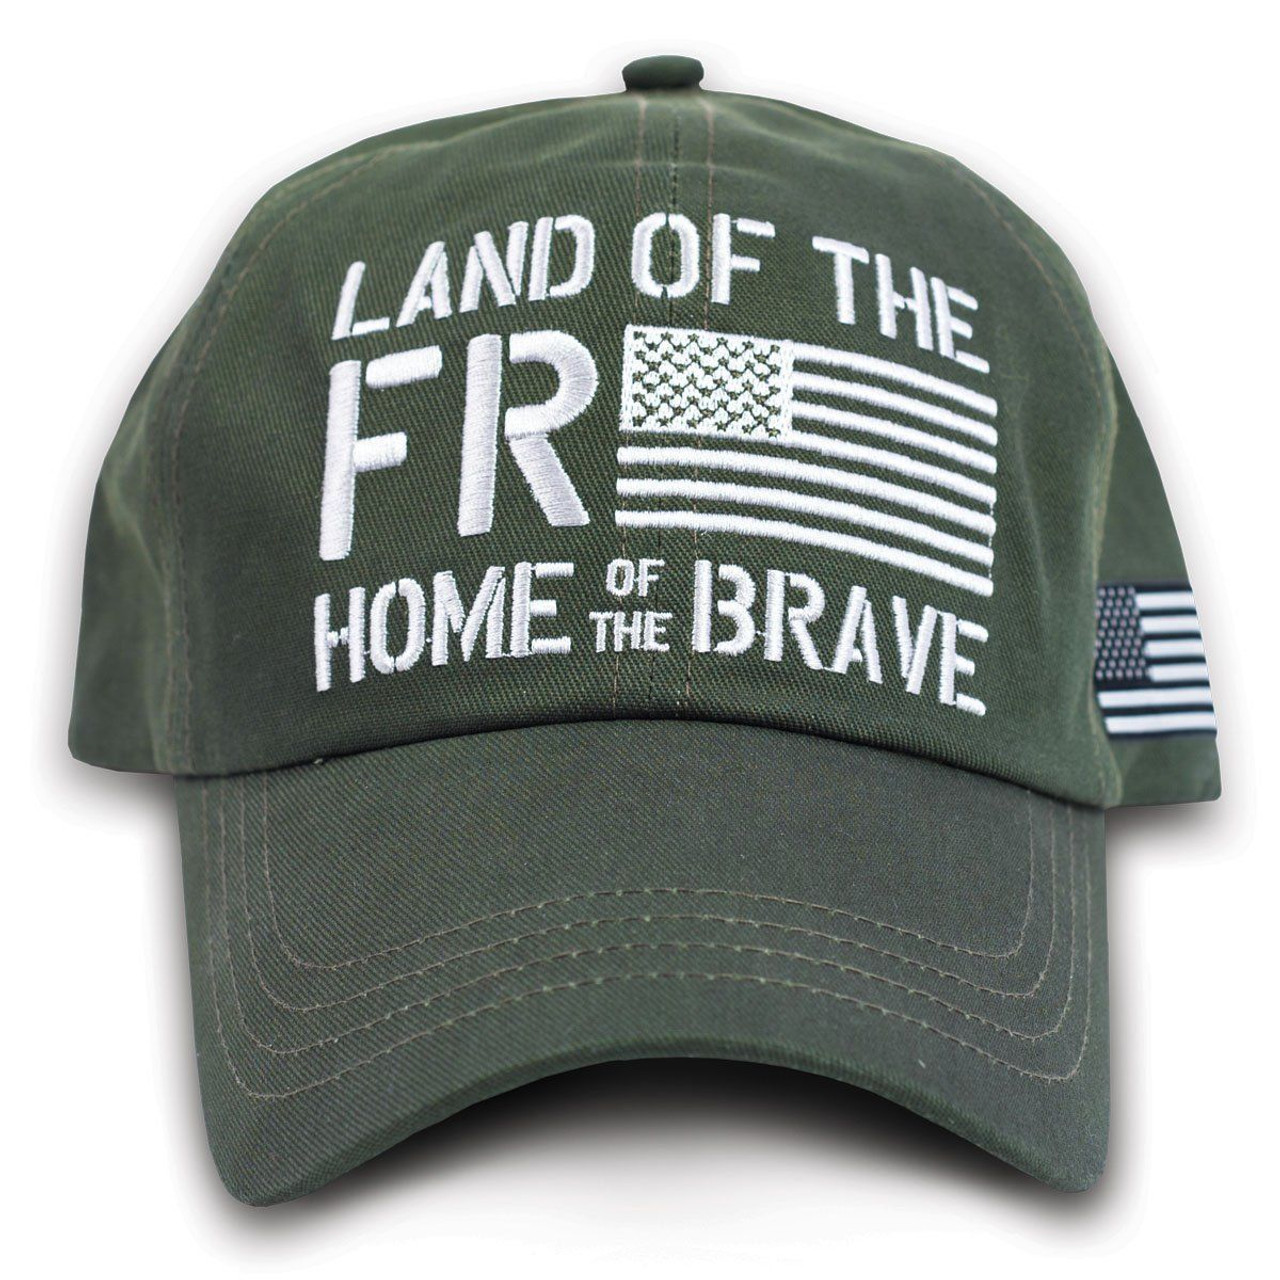 b1a4039878c Buck Wear Land of the Free Home of the Brave Cap Hat American Flag  Adjustable